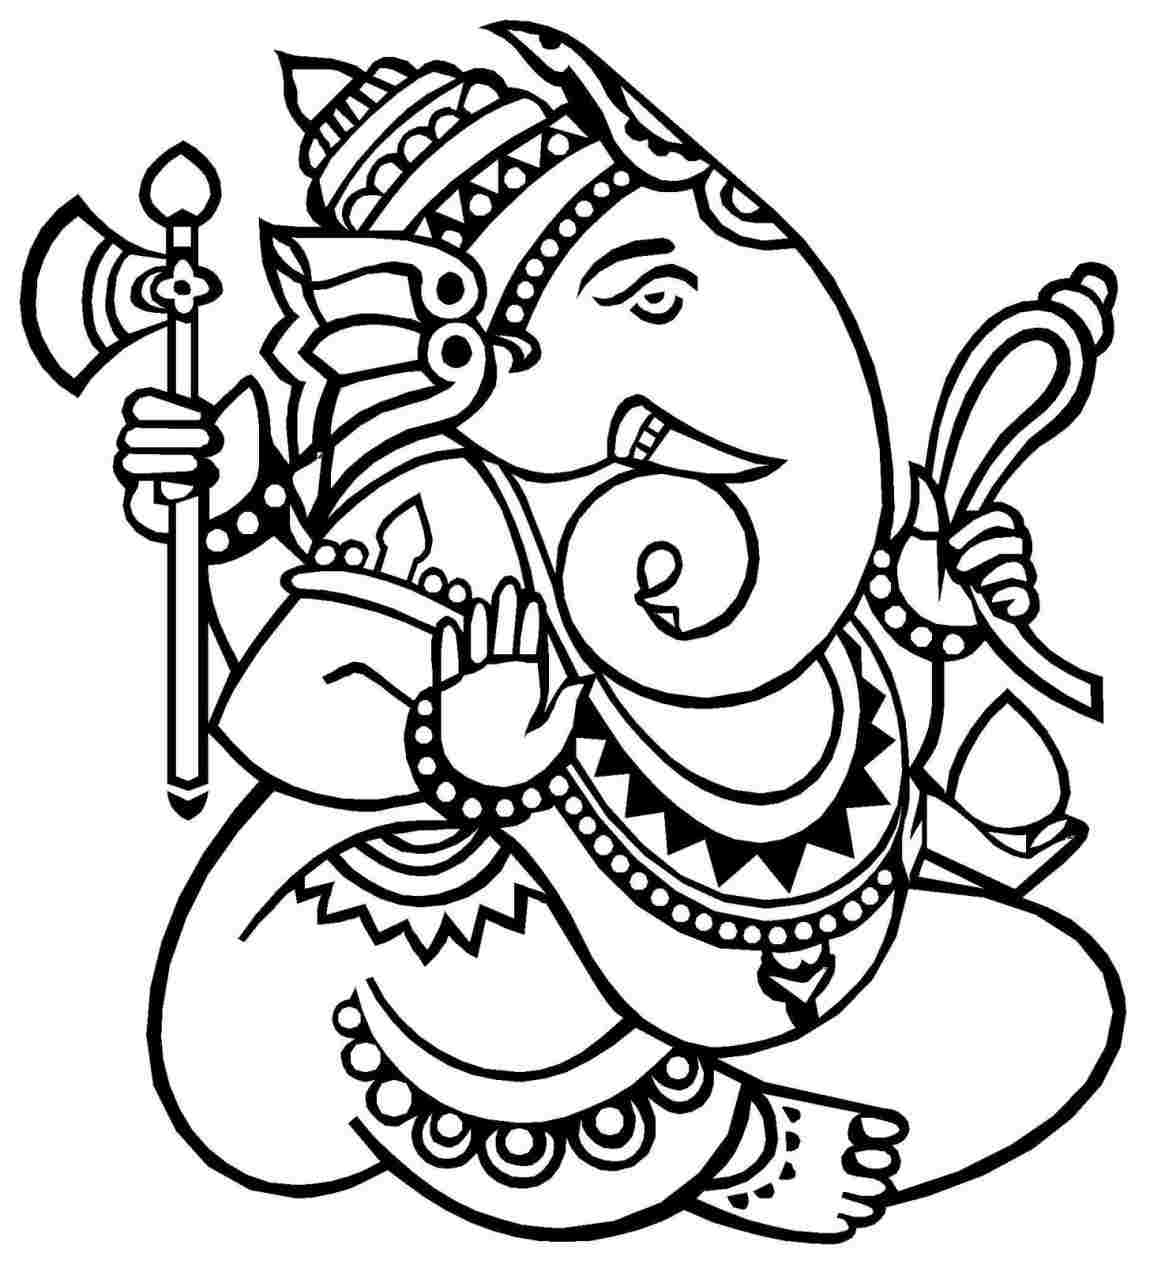 Lord Shiva Drawing | Free download best Lord Shiva Drawing on